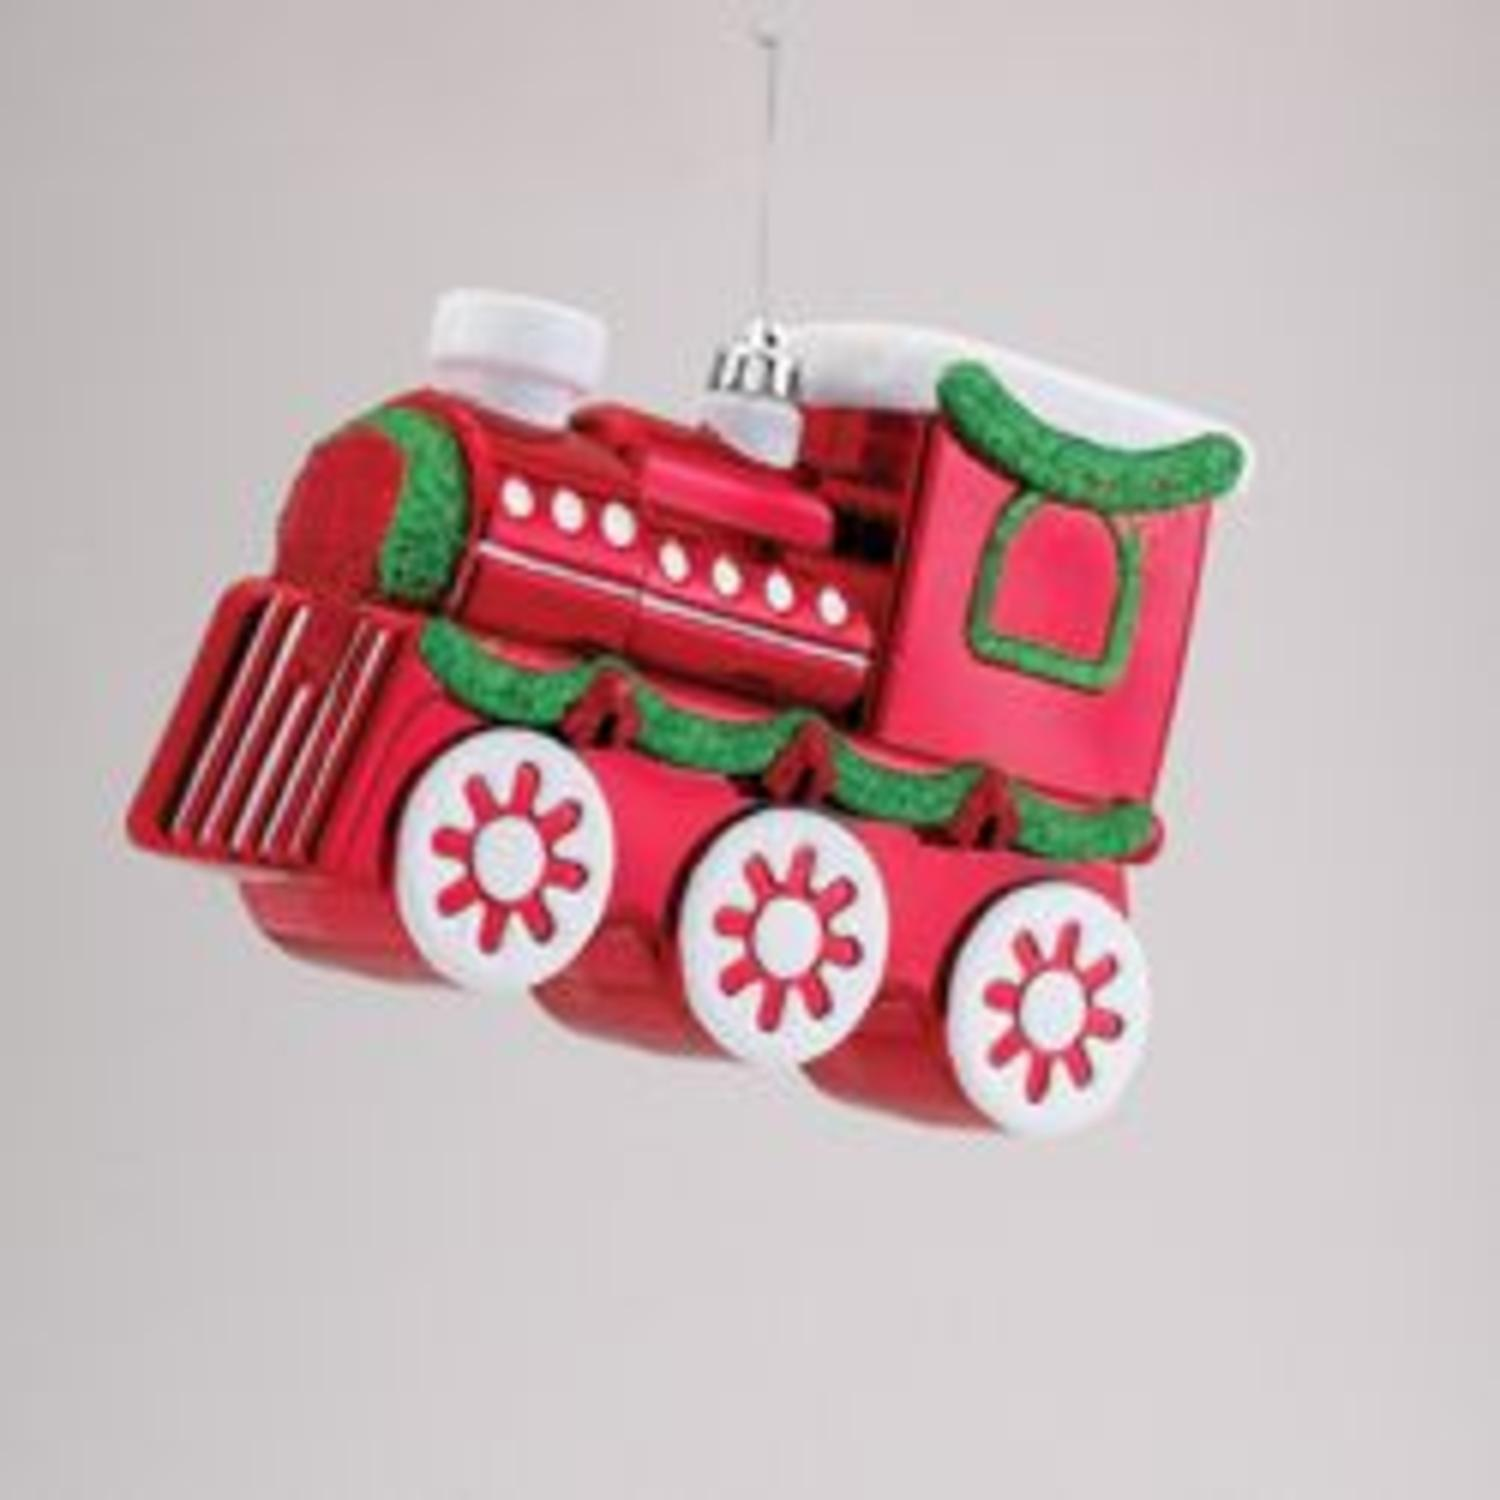 9 red and green glitter embellished express train christmas ornament